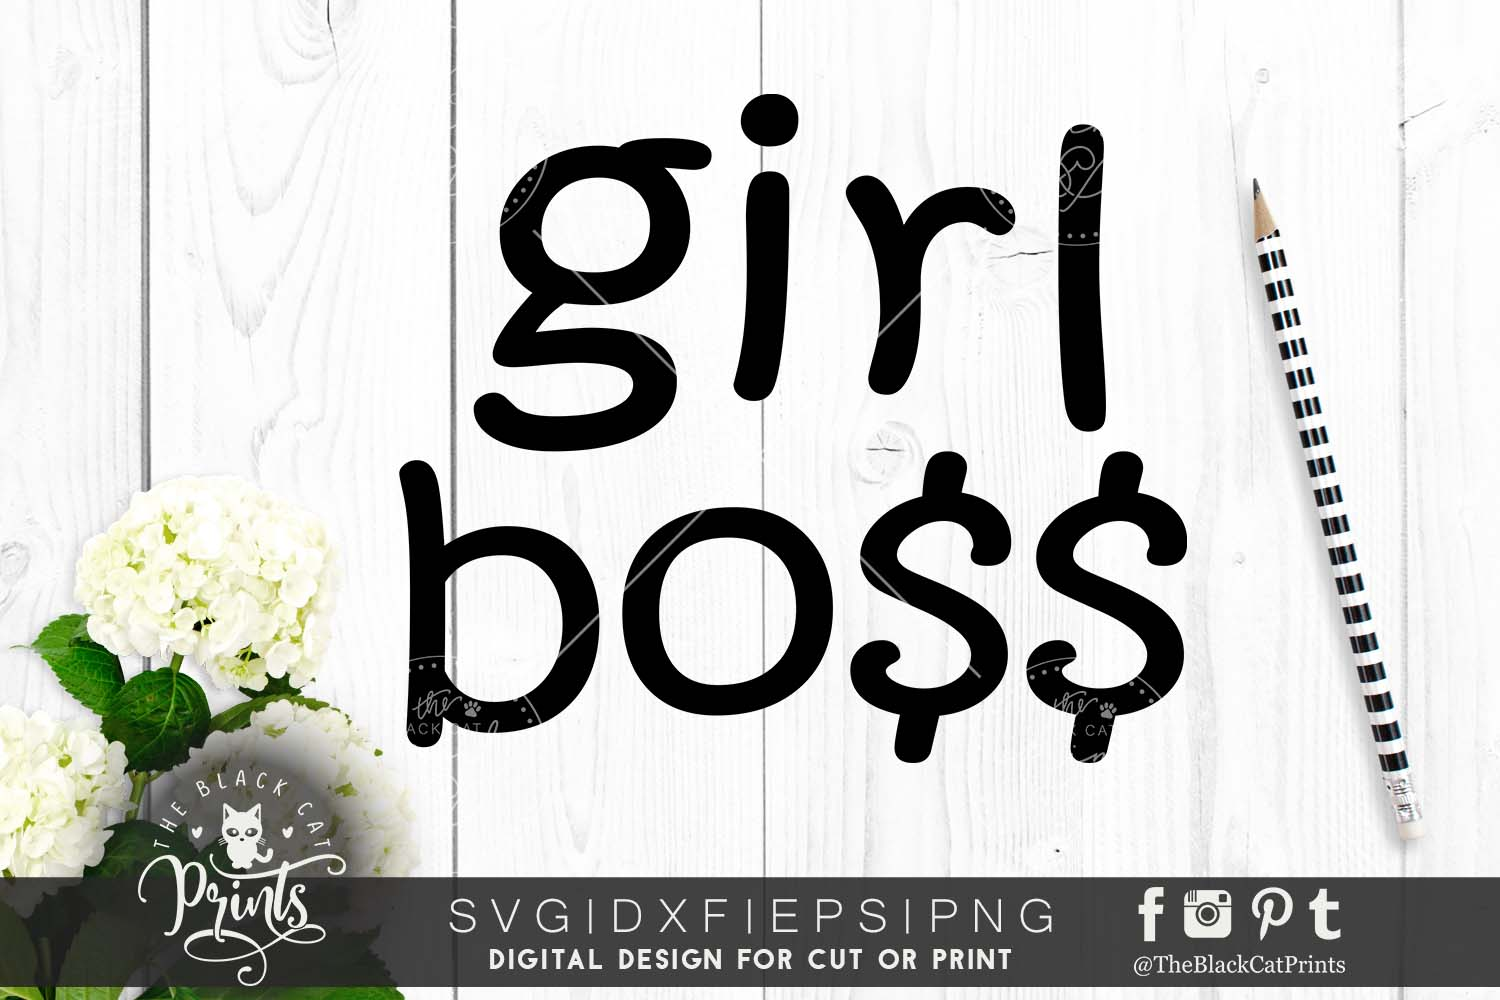 Girl boss SVG PNG EPS DXF example image 1